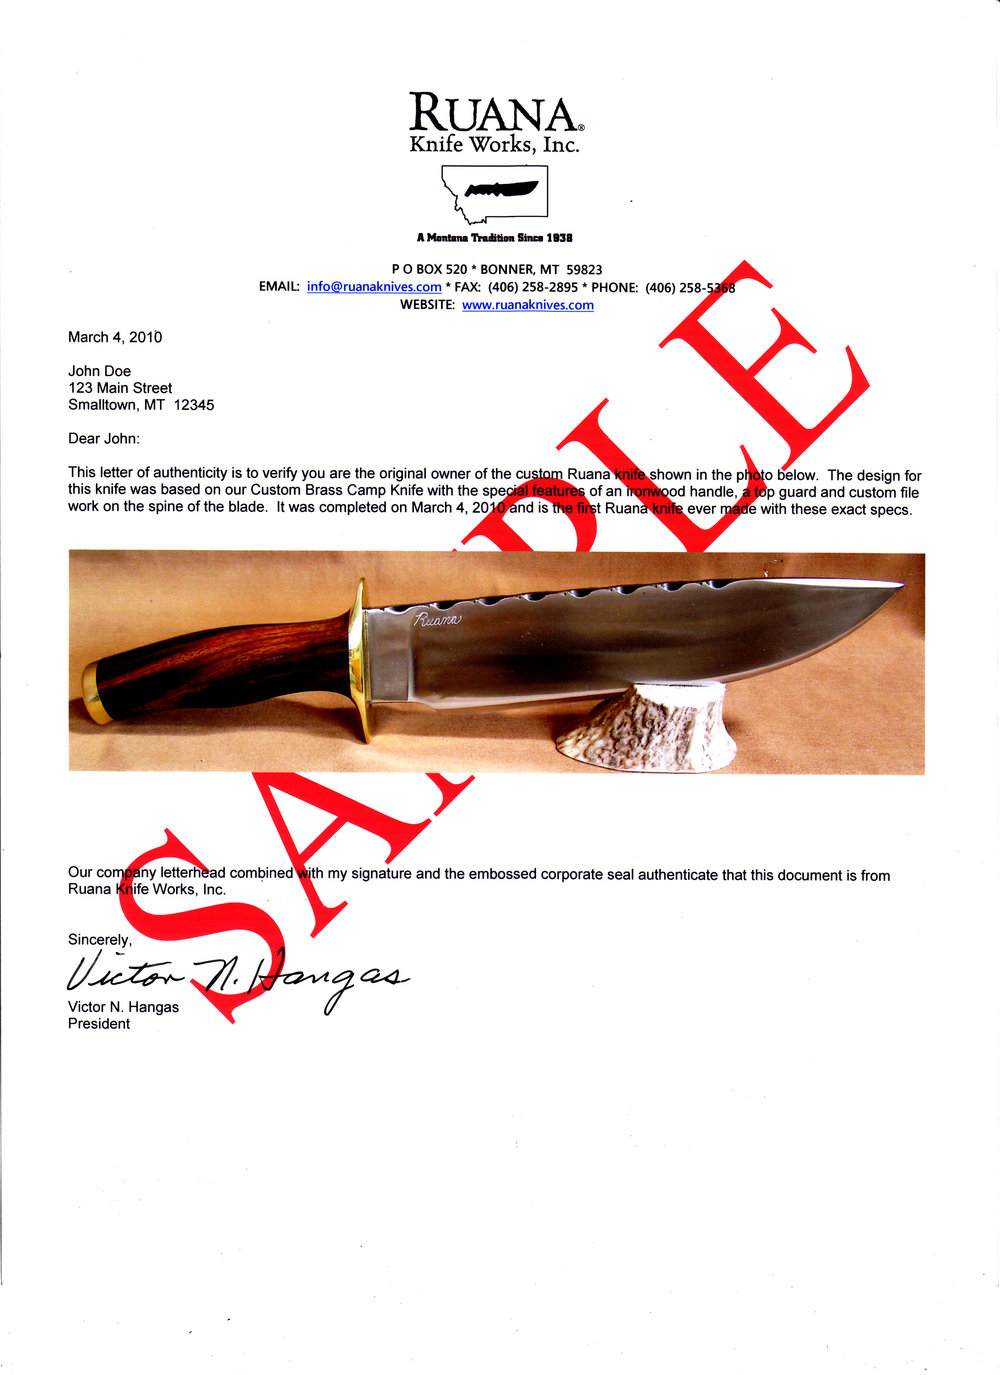 New Knife Letter of Authenticity - Type 1: New Knife Letter of Authenticity with Text only includes:A description of your knife including its completion date, our company letterhead, a signature, and embossed corporate seal on one copy on plain paper.$20 when shipped with your new knife.Type 2: New Knife Letter of Authenticity with Color Photo includes a written description of your knife, its approximate date completion, our company letterhead, a signature, embossed corporate seal, a color photo of your knife within the letter, and two copies of the letter: one on plain paper and one on glossy paper that is suitable for framing.$50 when shipped with your new knife.Rates for older knives (shown above) will apply to letters created after your knife has been shipped.